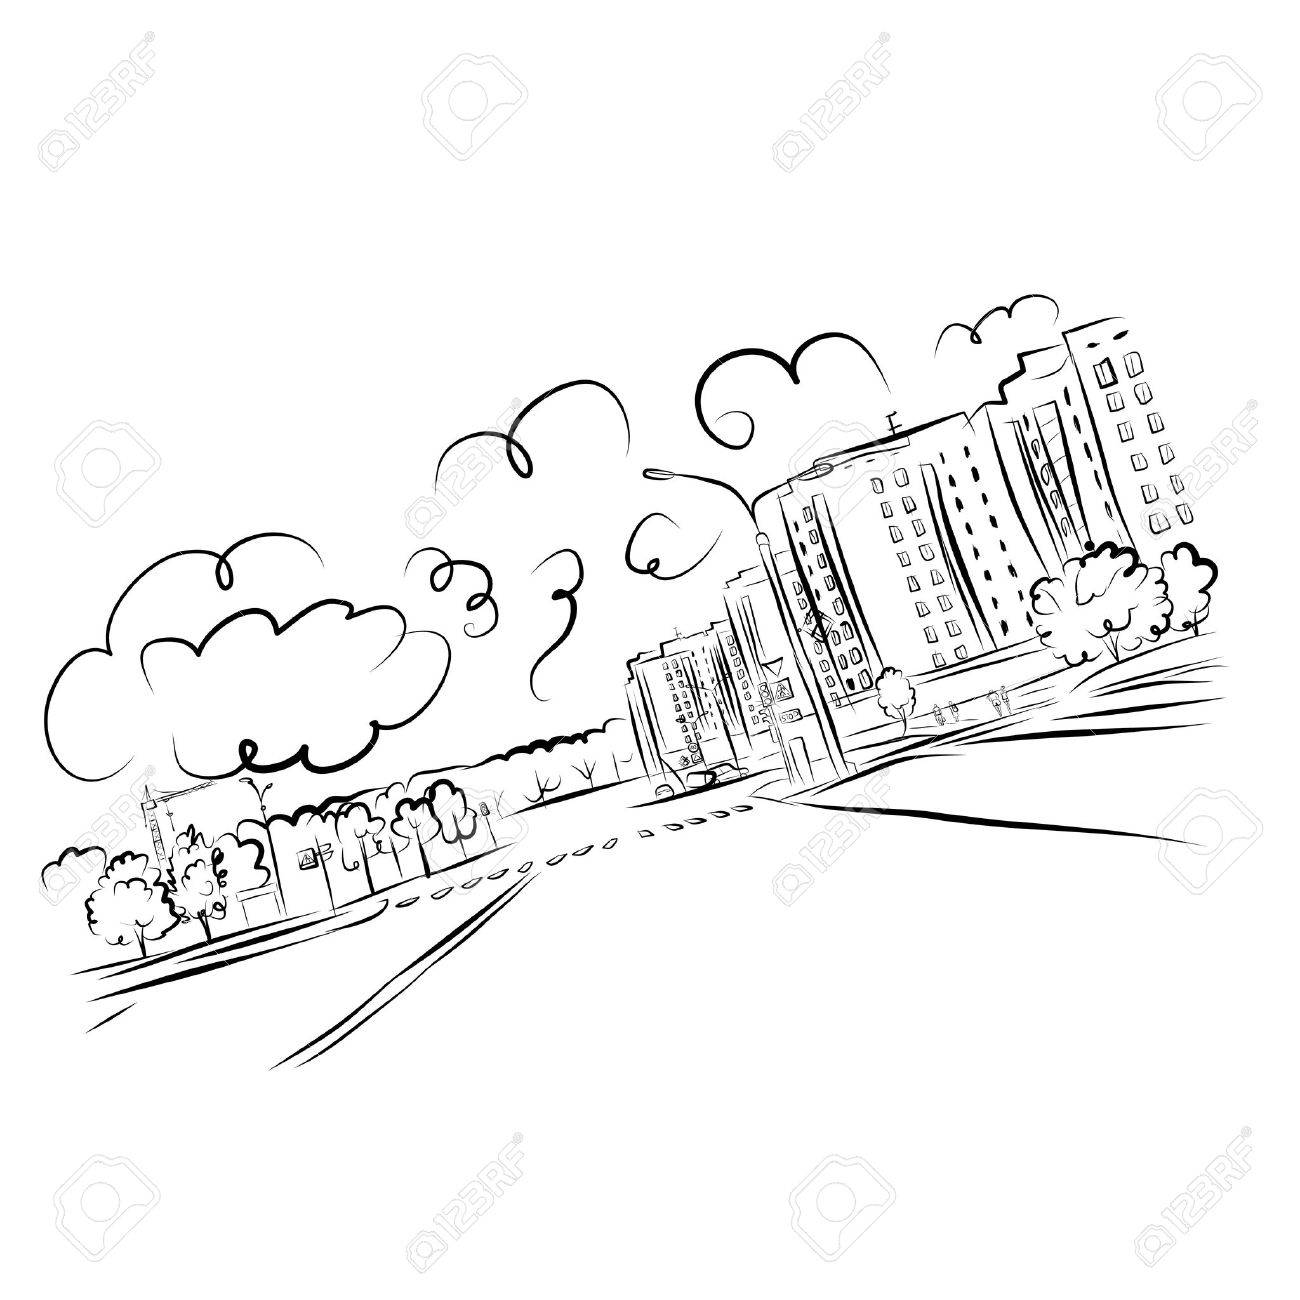 Sketch of cityscape for your design - 23228775